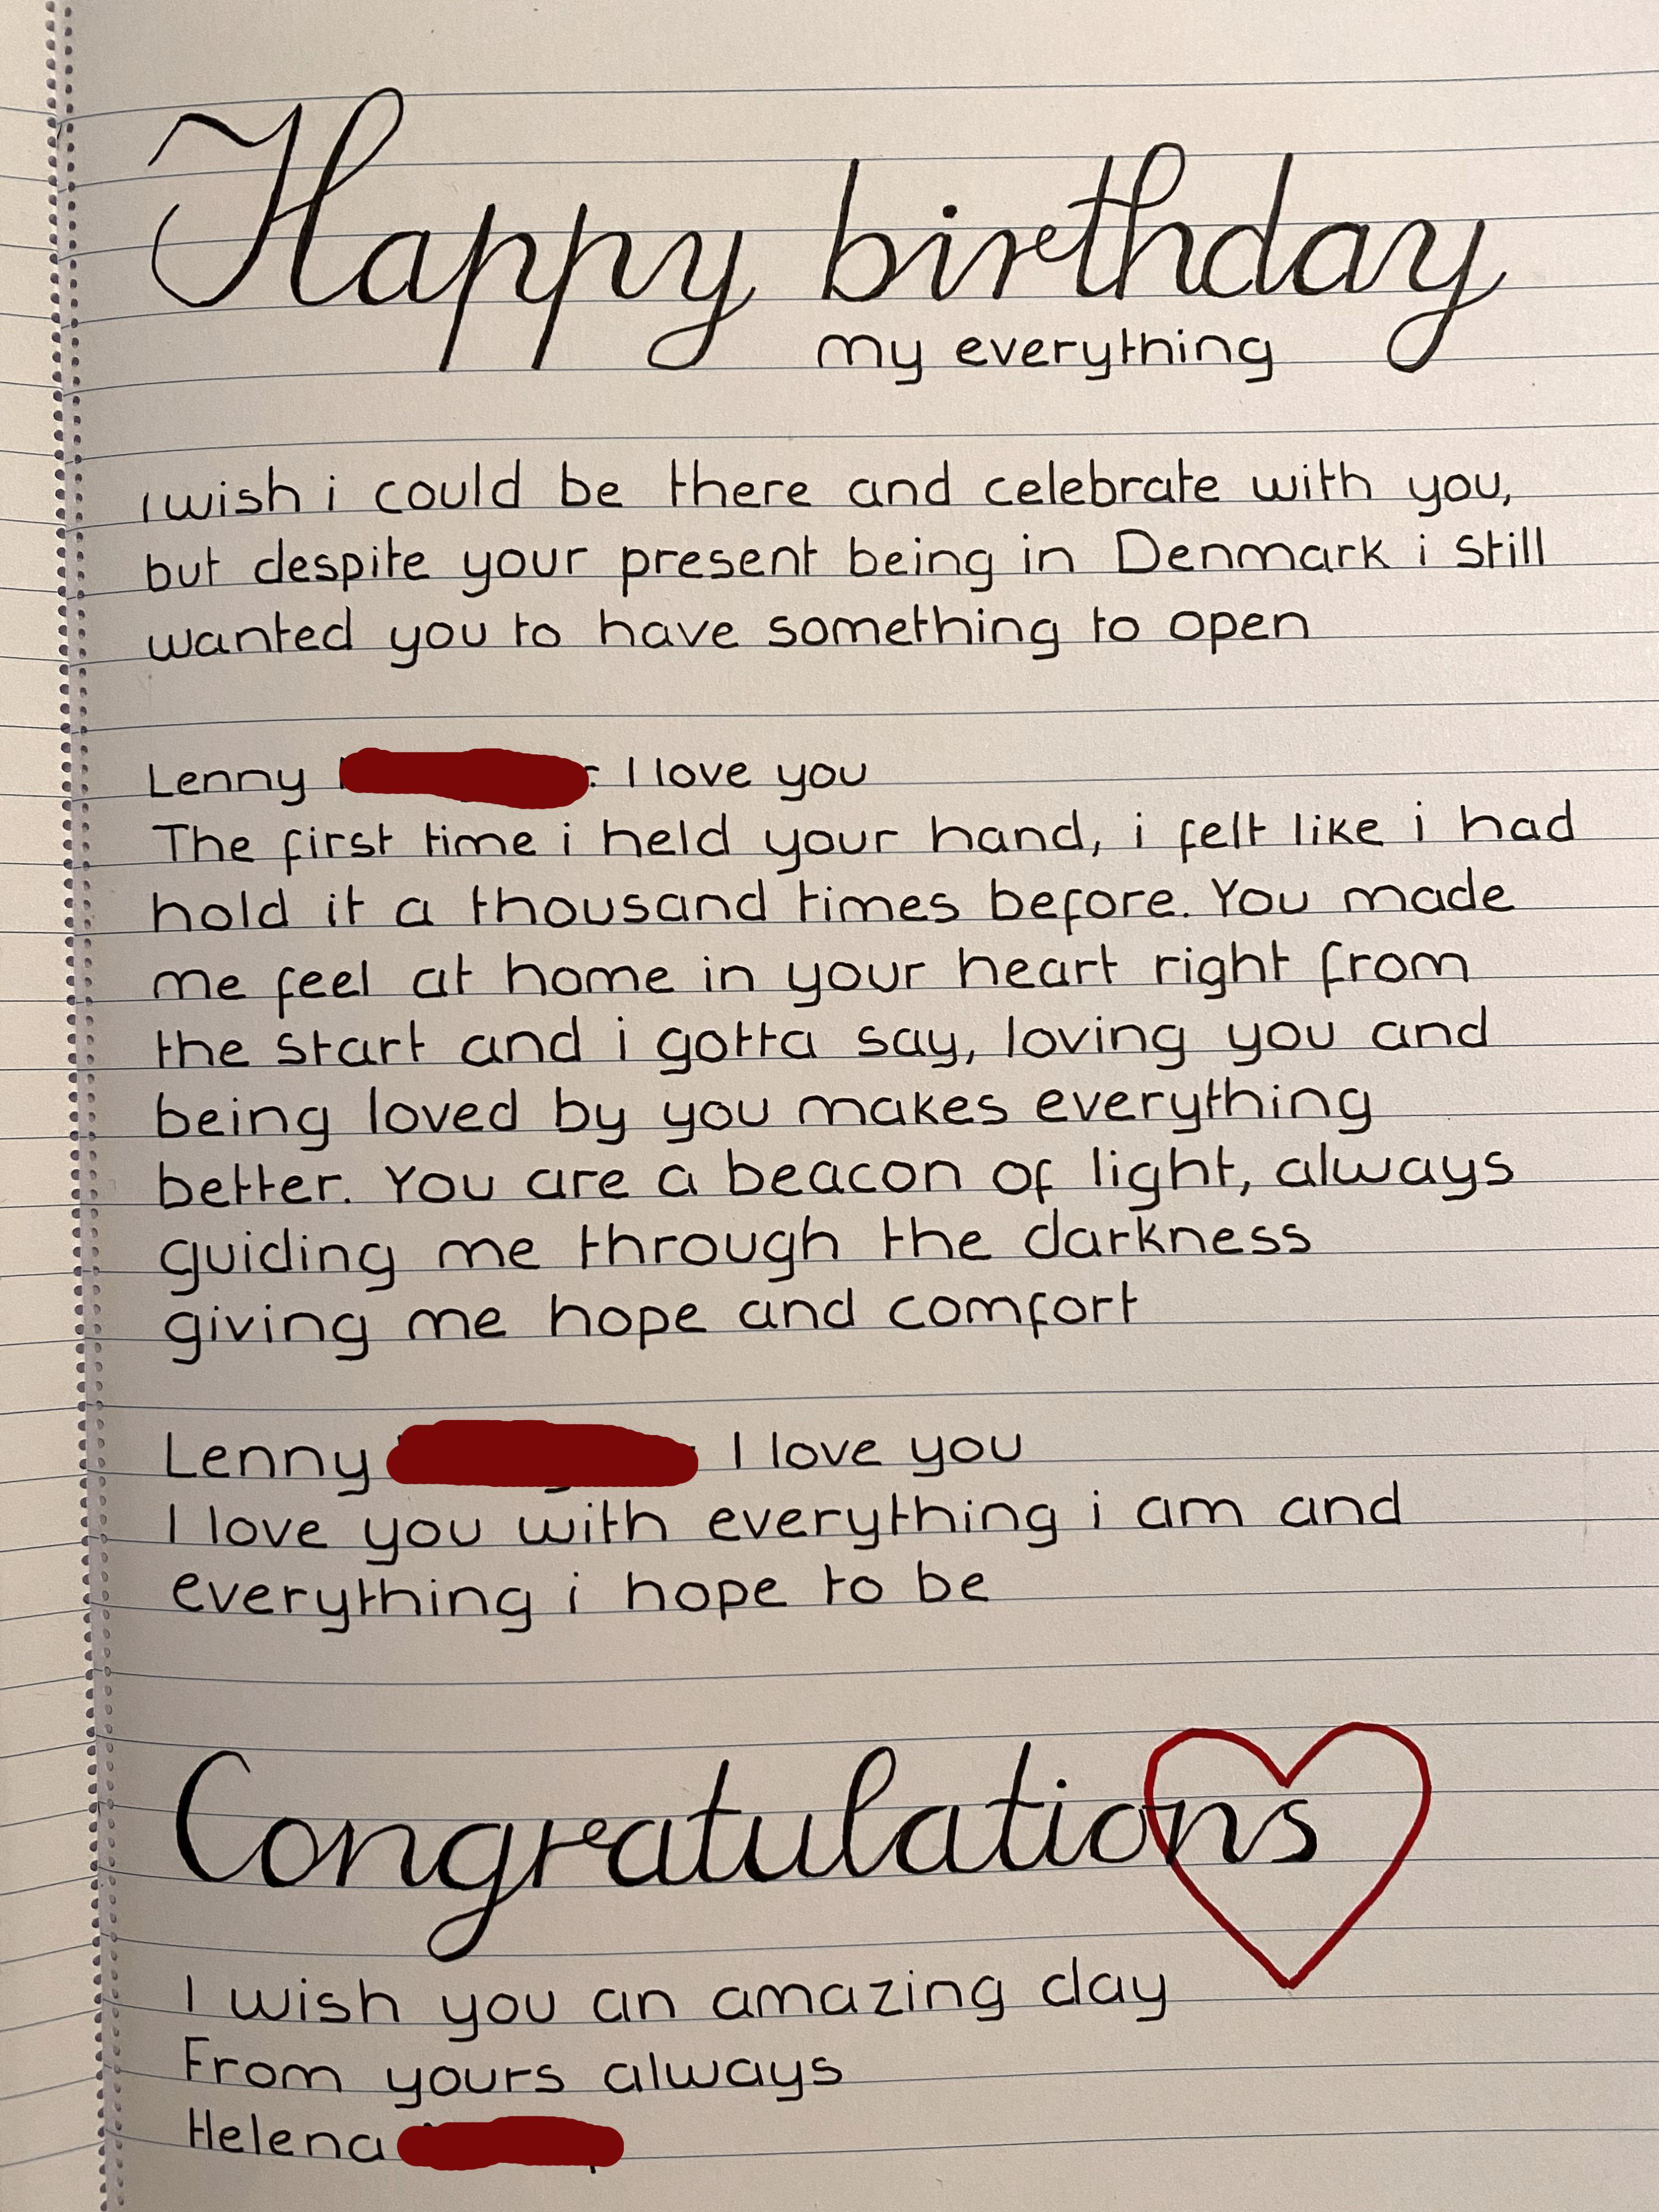 Letter To My Boyfriend On His Birthday : letter, boyfriend, birthday, Wrote, Birthday, Letter, Boyfriend, English, Isn't, First, Language, Realised, Grammar, Mistakes